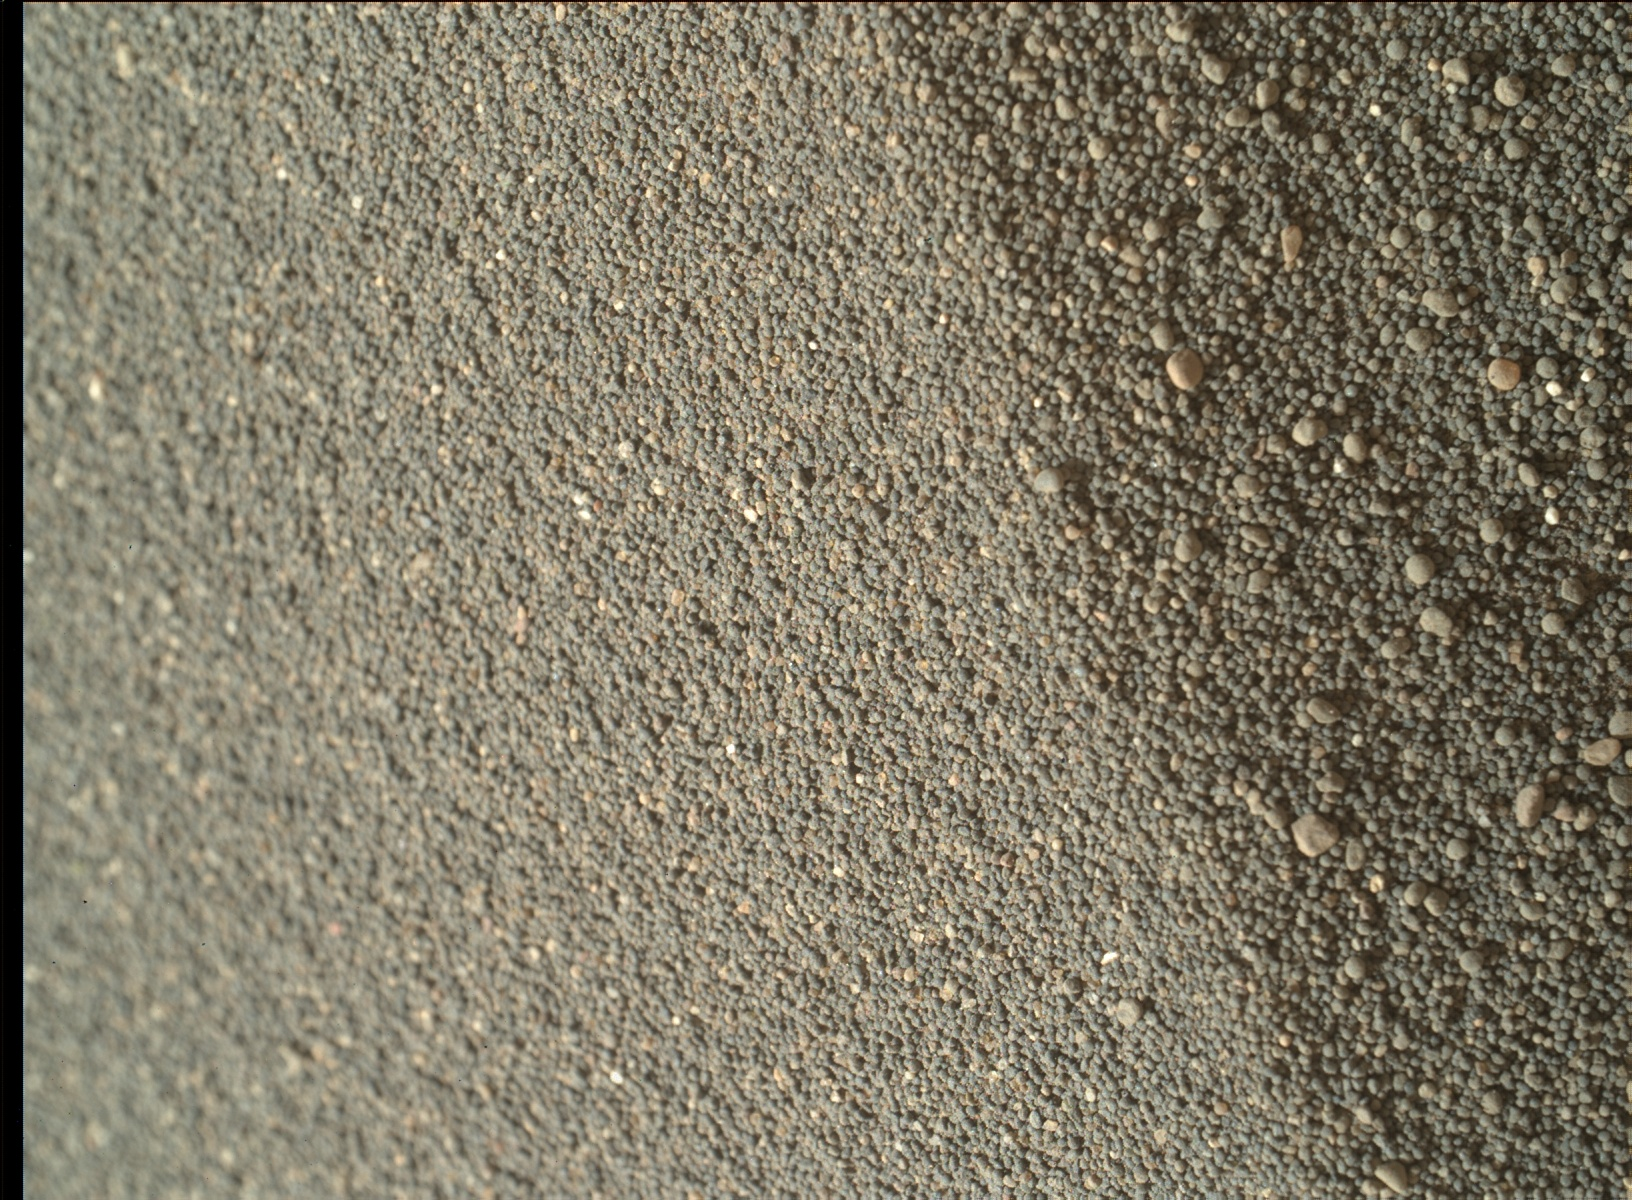 Nasa's Mars rover Curiosity acquired this image using its Mars Hand Lens Imager (MAHLI) on Sol 1749